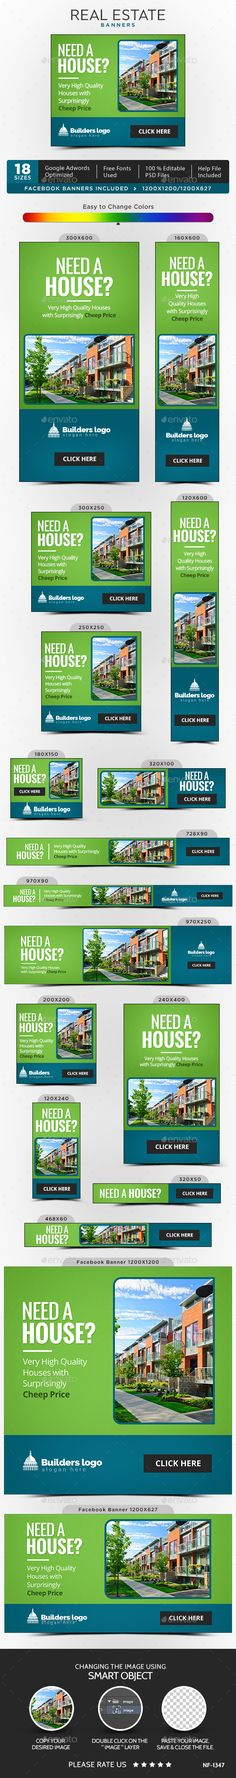 Real Estate Banner Design - Banners & Ads Web Template PSD. Download here: http://graphicriver.net/item/real-estate-banners/16583947?ref=yinkira